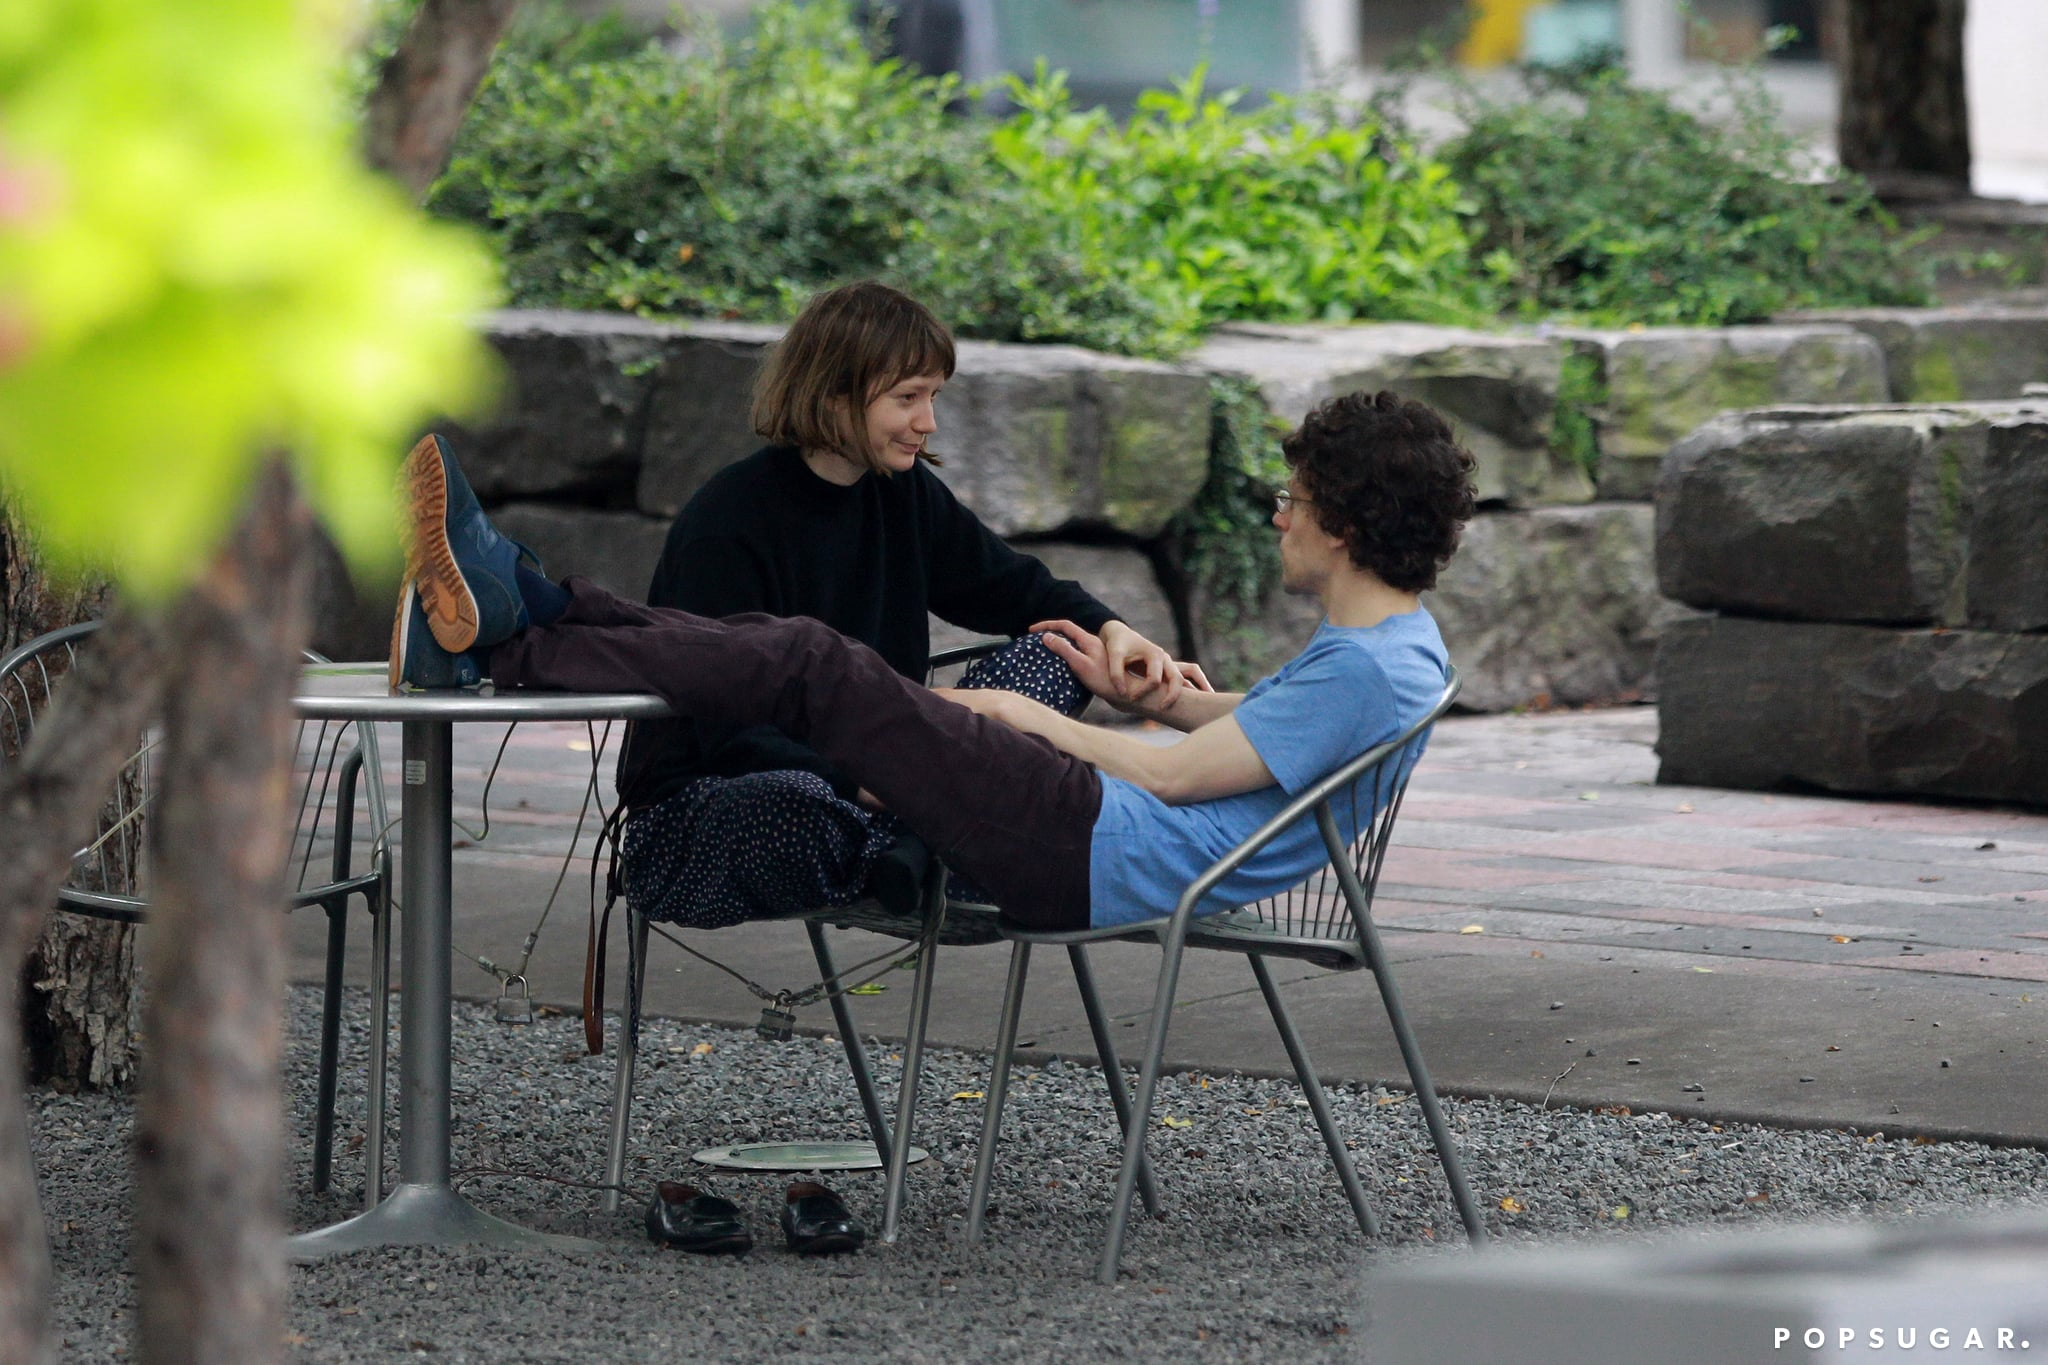 Jesse Eisenberg and Mia Wasikowska shared a romantic park date in Toronto.